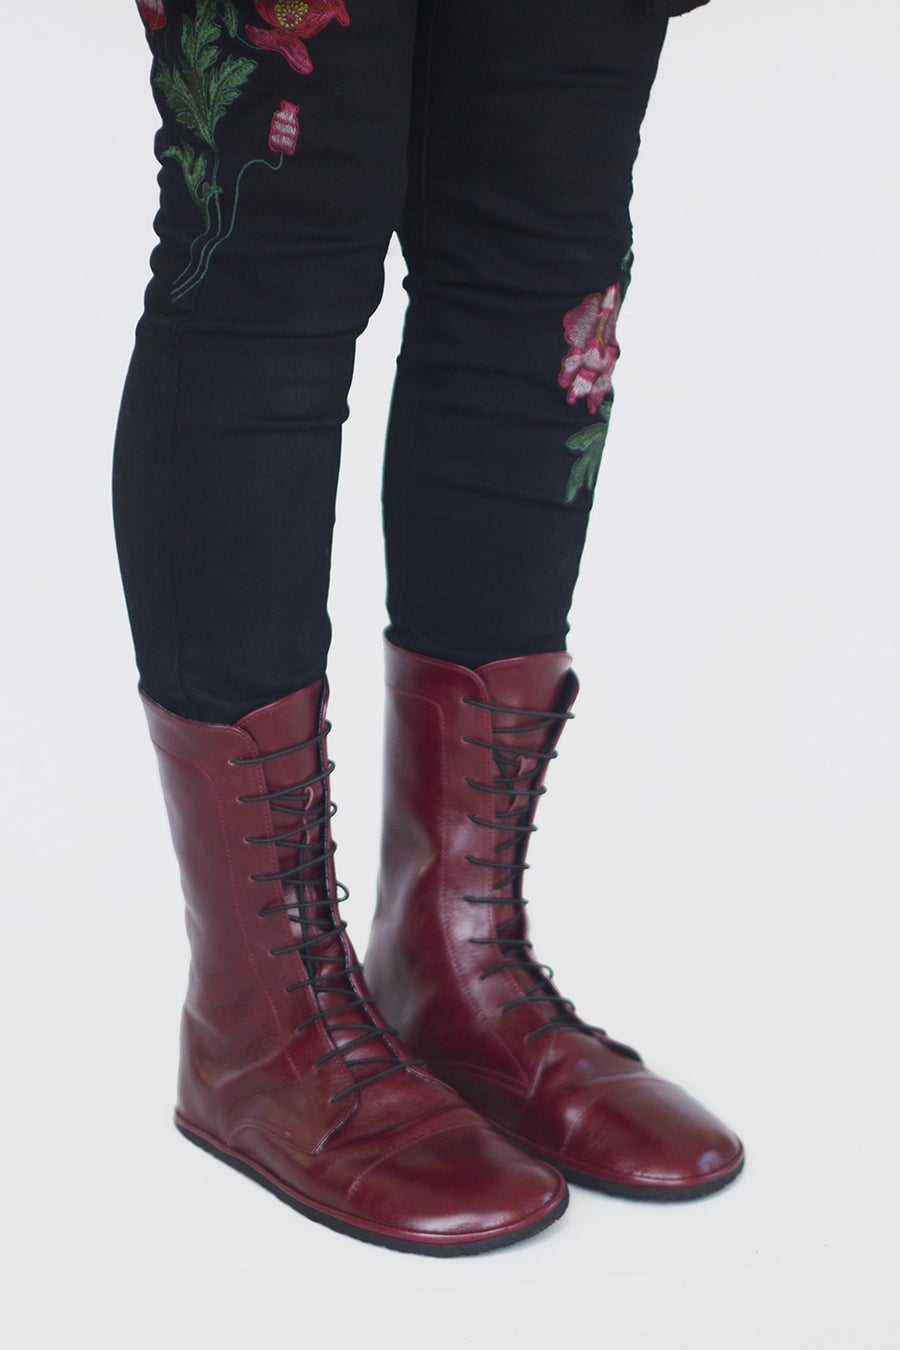 Image of Lace up boots - Impulse in Oxblood